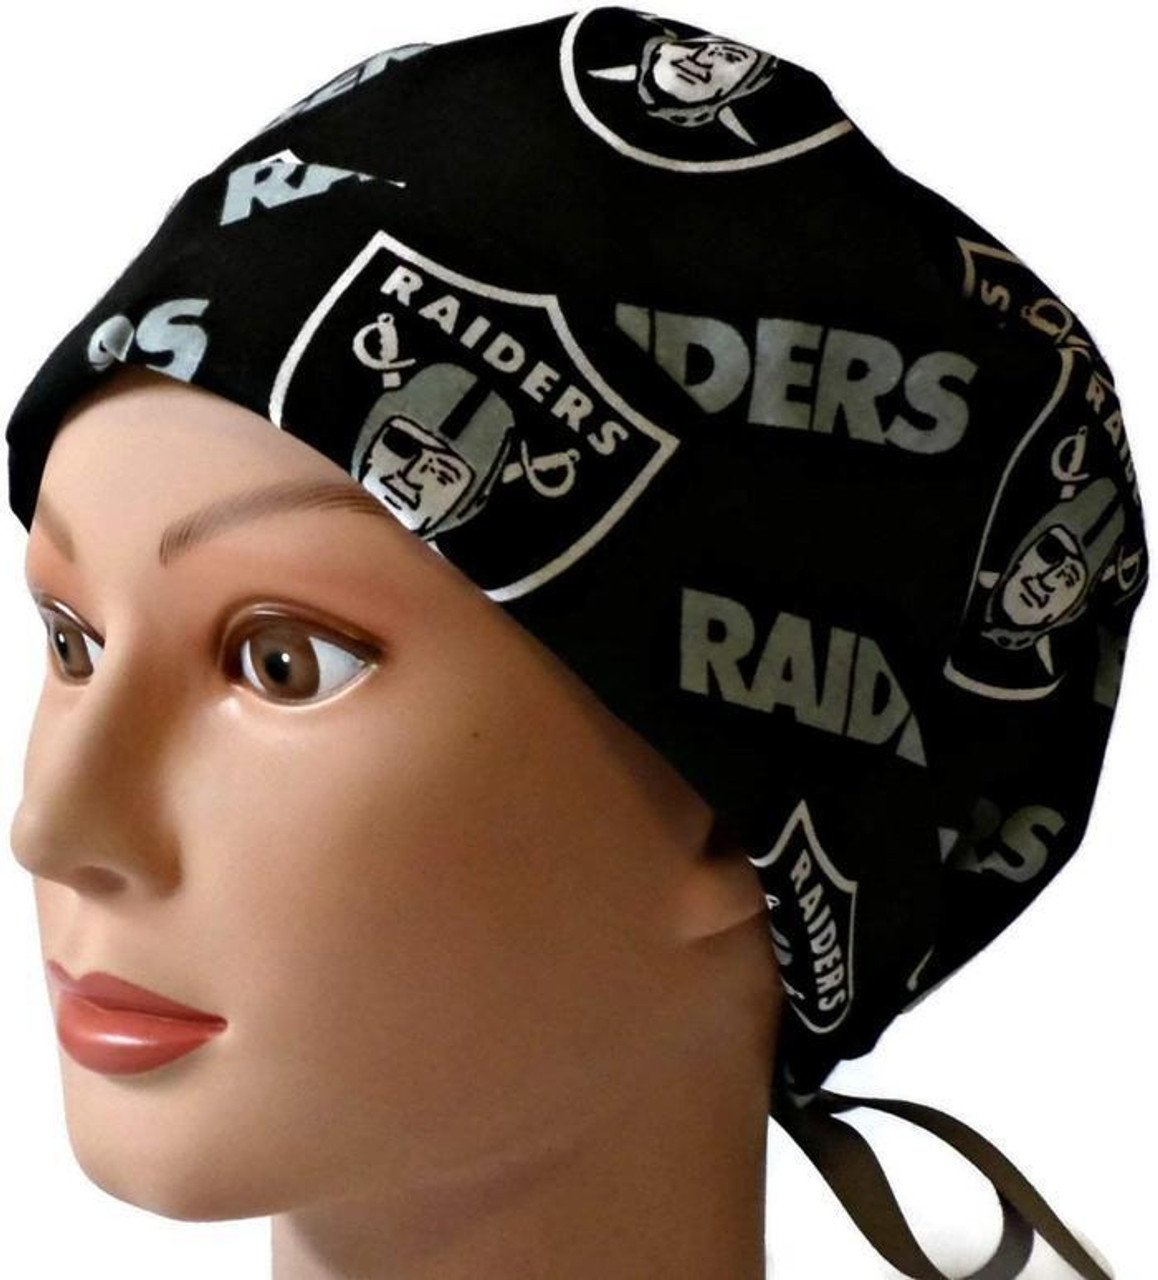 62b78d357e3cf Women s Adjustable Fold-Up Pixie Surgical Scrub Hat Cap Handmade with Oakland  Raiders Black fabric ...